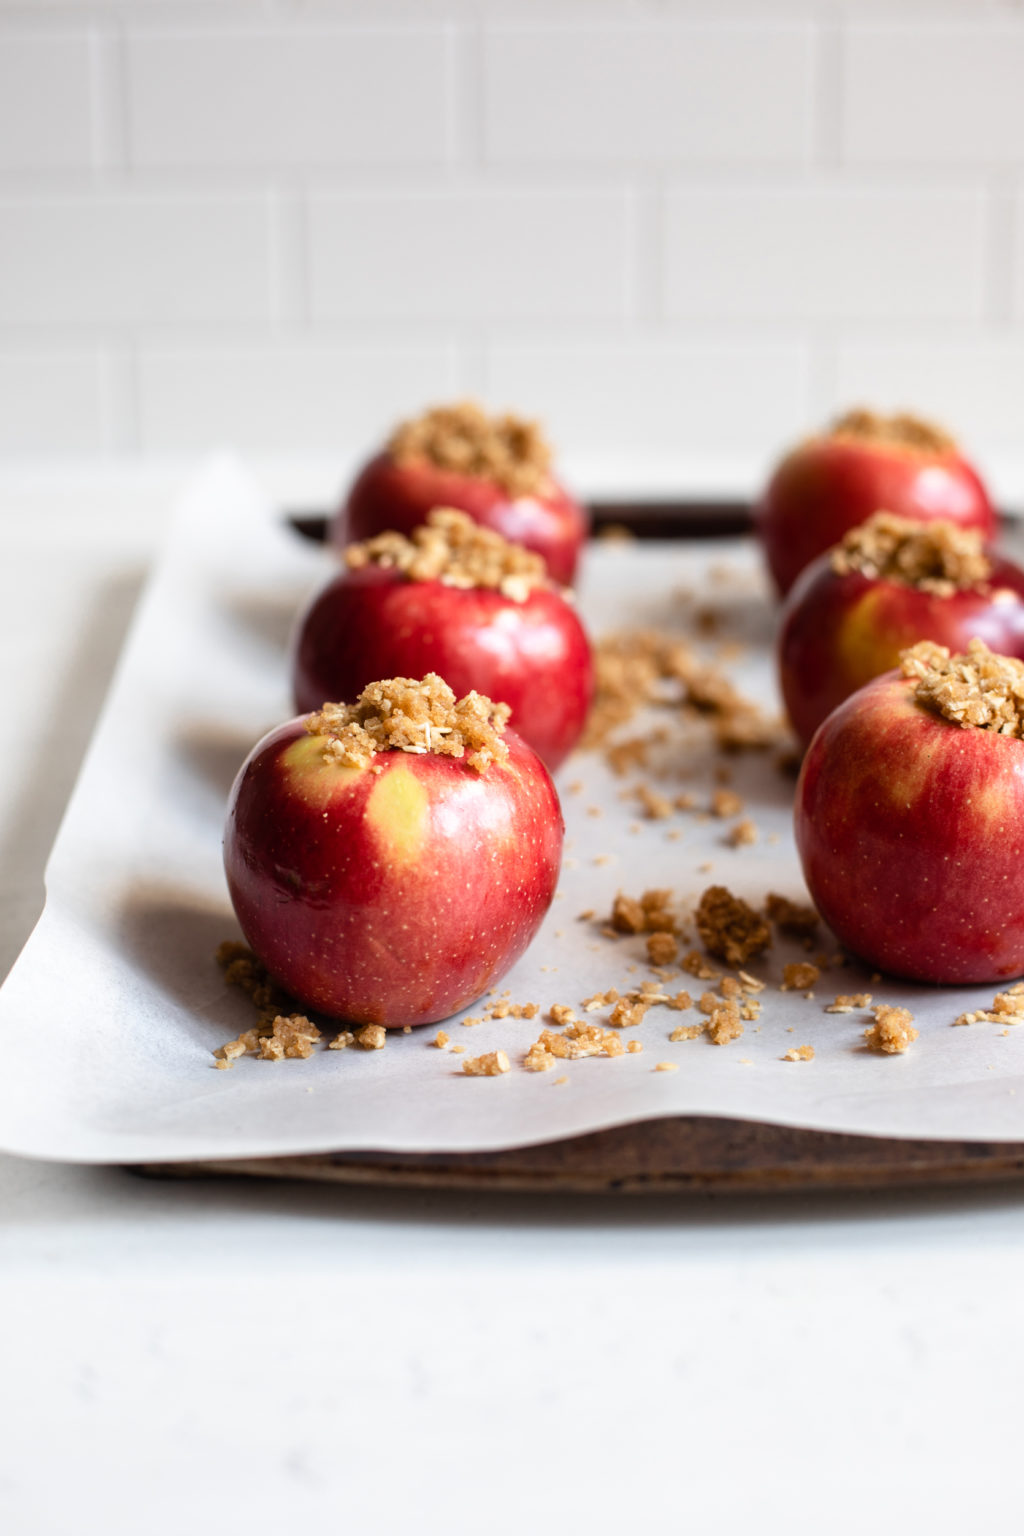 A baking sheet is covered with parchment and bright red apples that have been stuffed with a filling of oats, flour, and brown sugar.